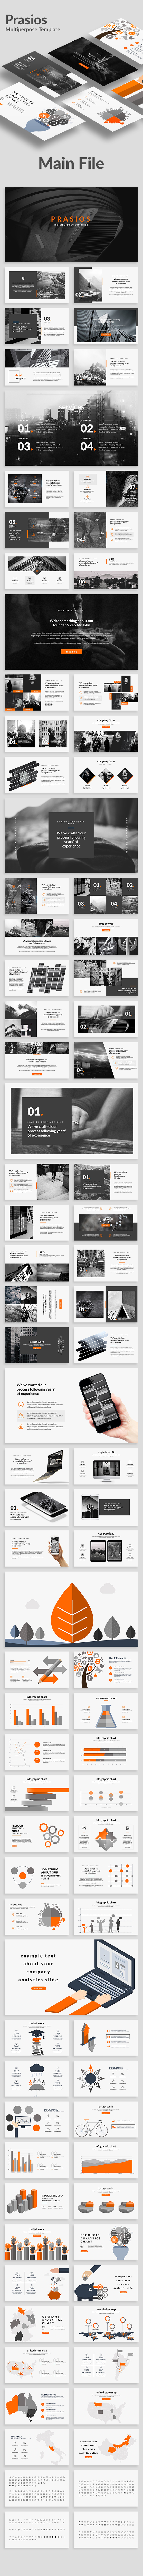 Prasios Multipurpose Keynote Template - Creative Keynote Templates